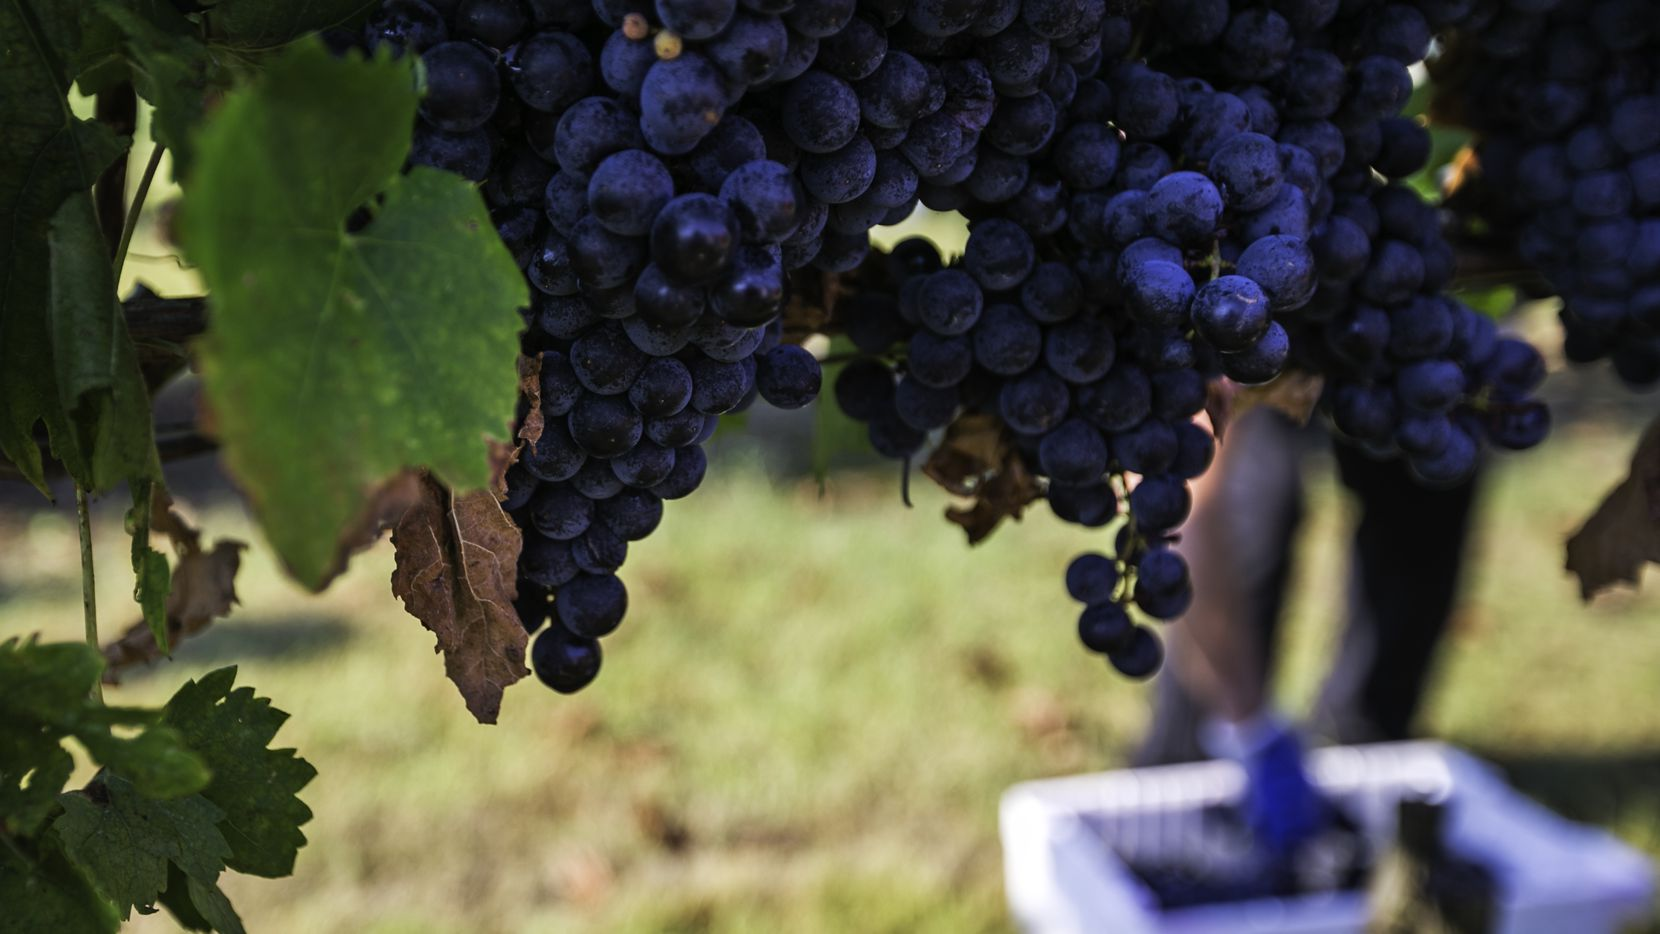 Tempranillo grapes ready for harvest at the Eden Hill Vineyards in Celina, Texas on Saturday, August 5, 2017.